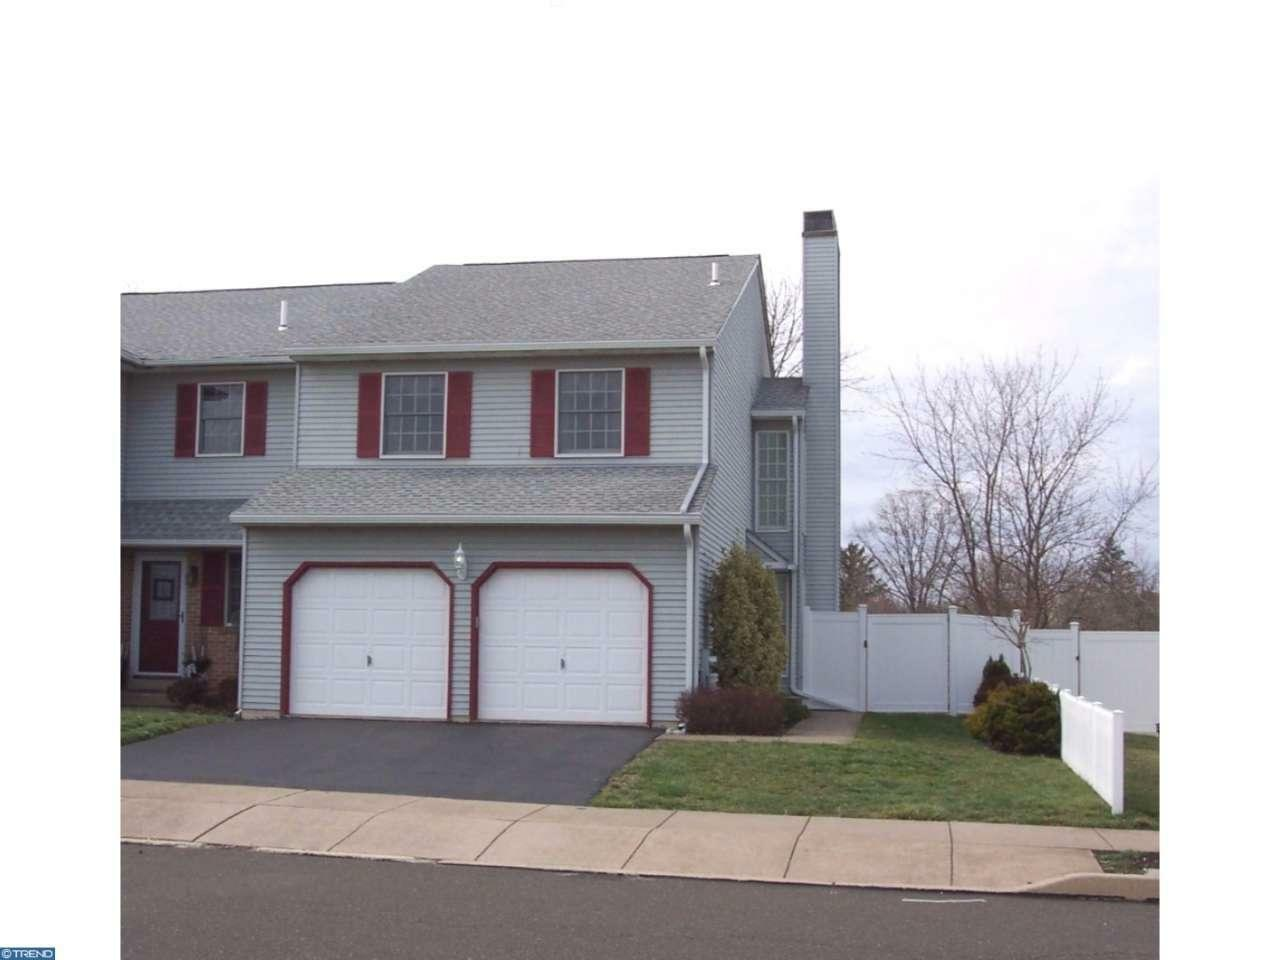 159 Red Haven Dr, North Wales, PA - USA (photo 1)